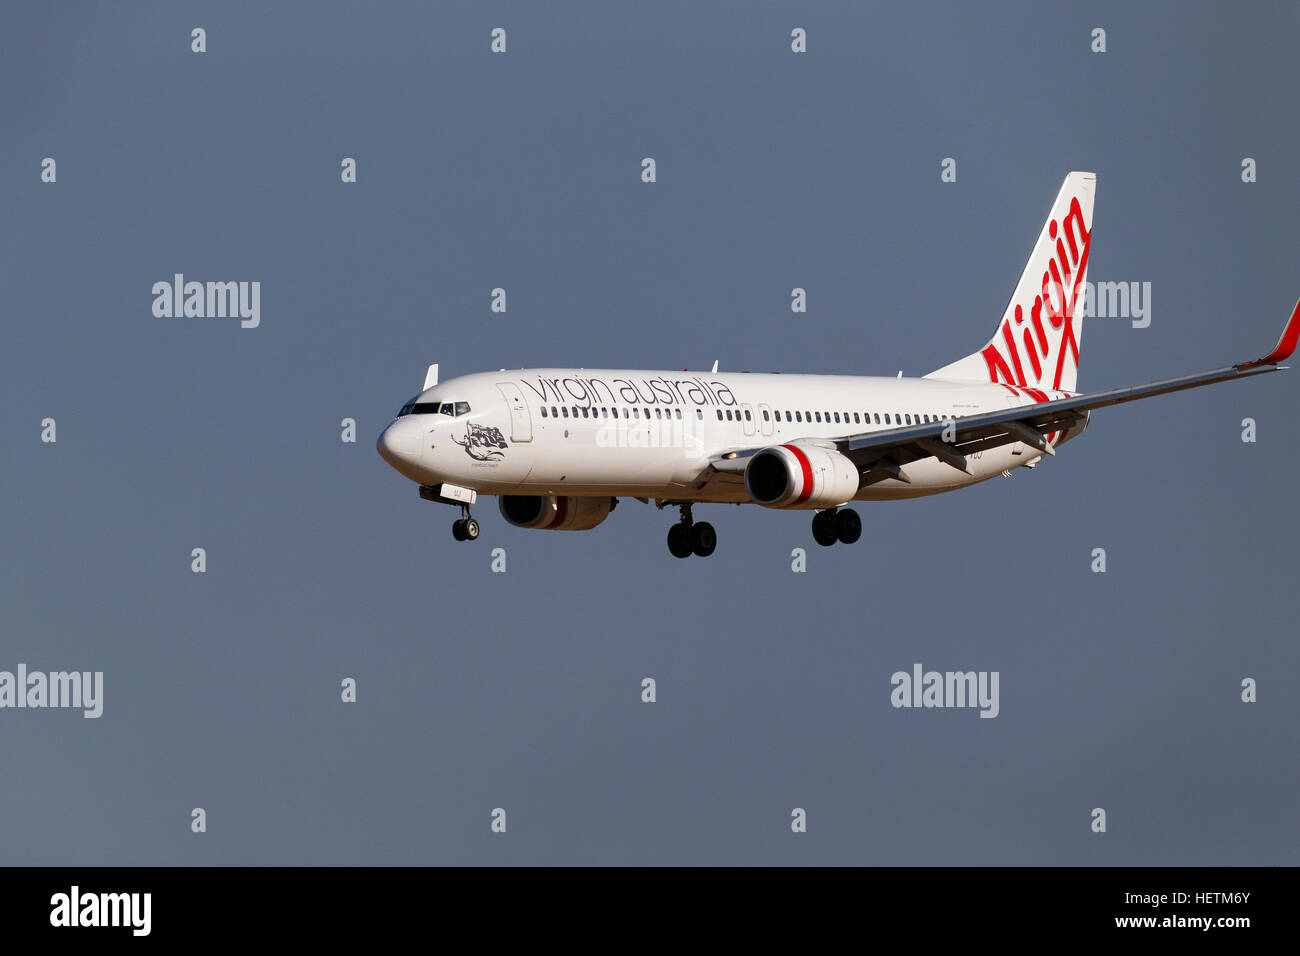 Virgin Australia airlines, commercial jet aircraft, Boeing 737-800 on approach to landing - Stock Image